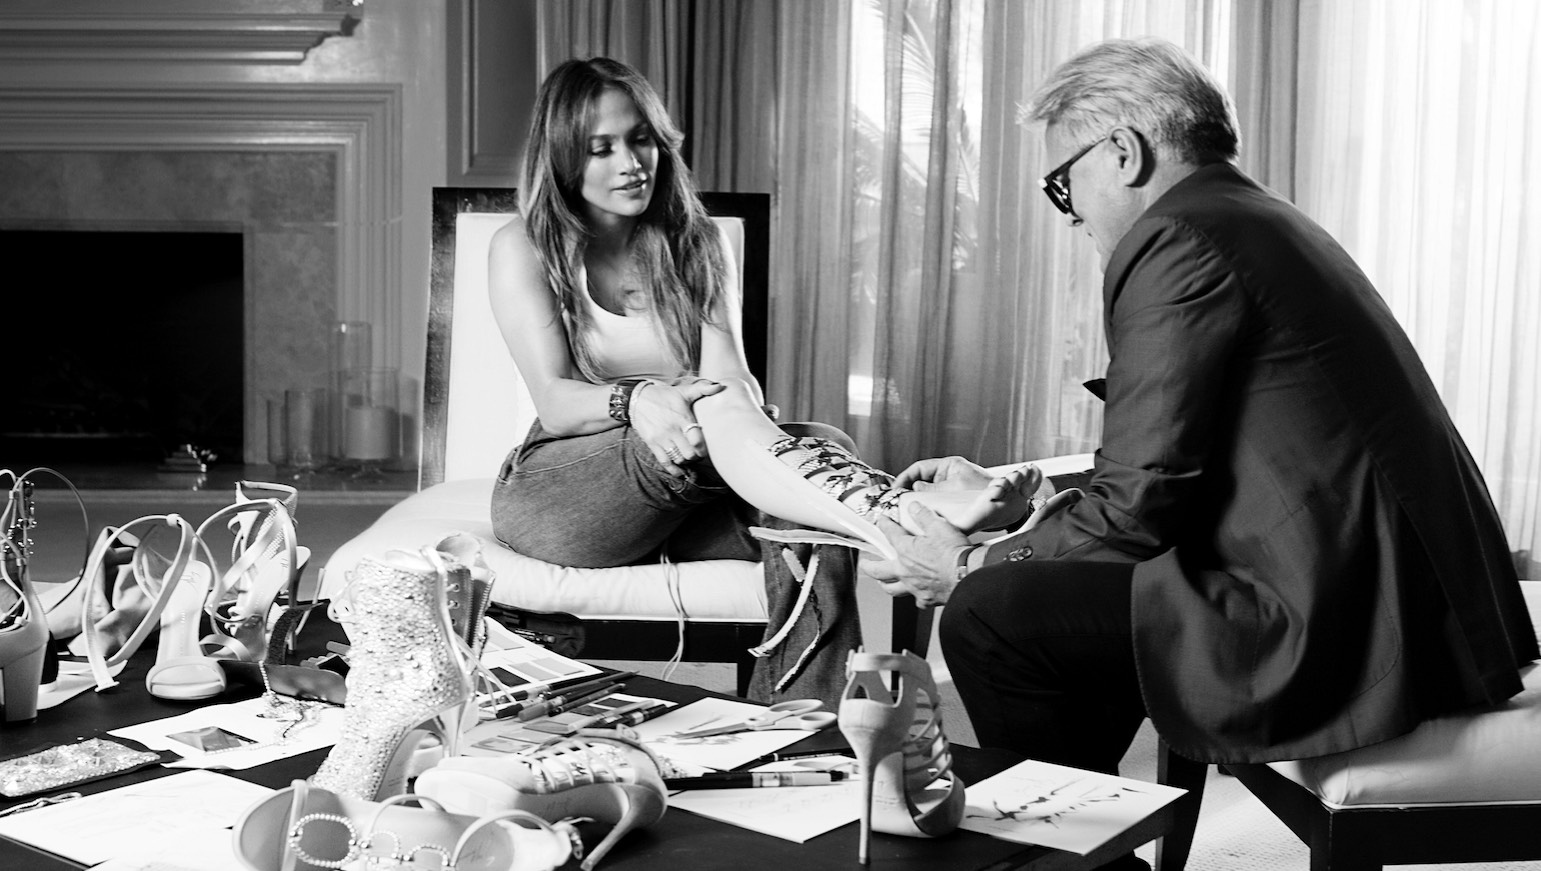 Zanotti will work with Jennifer Lopez for a new capsule footwear and accessories col- lection, launching in January 2017.